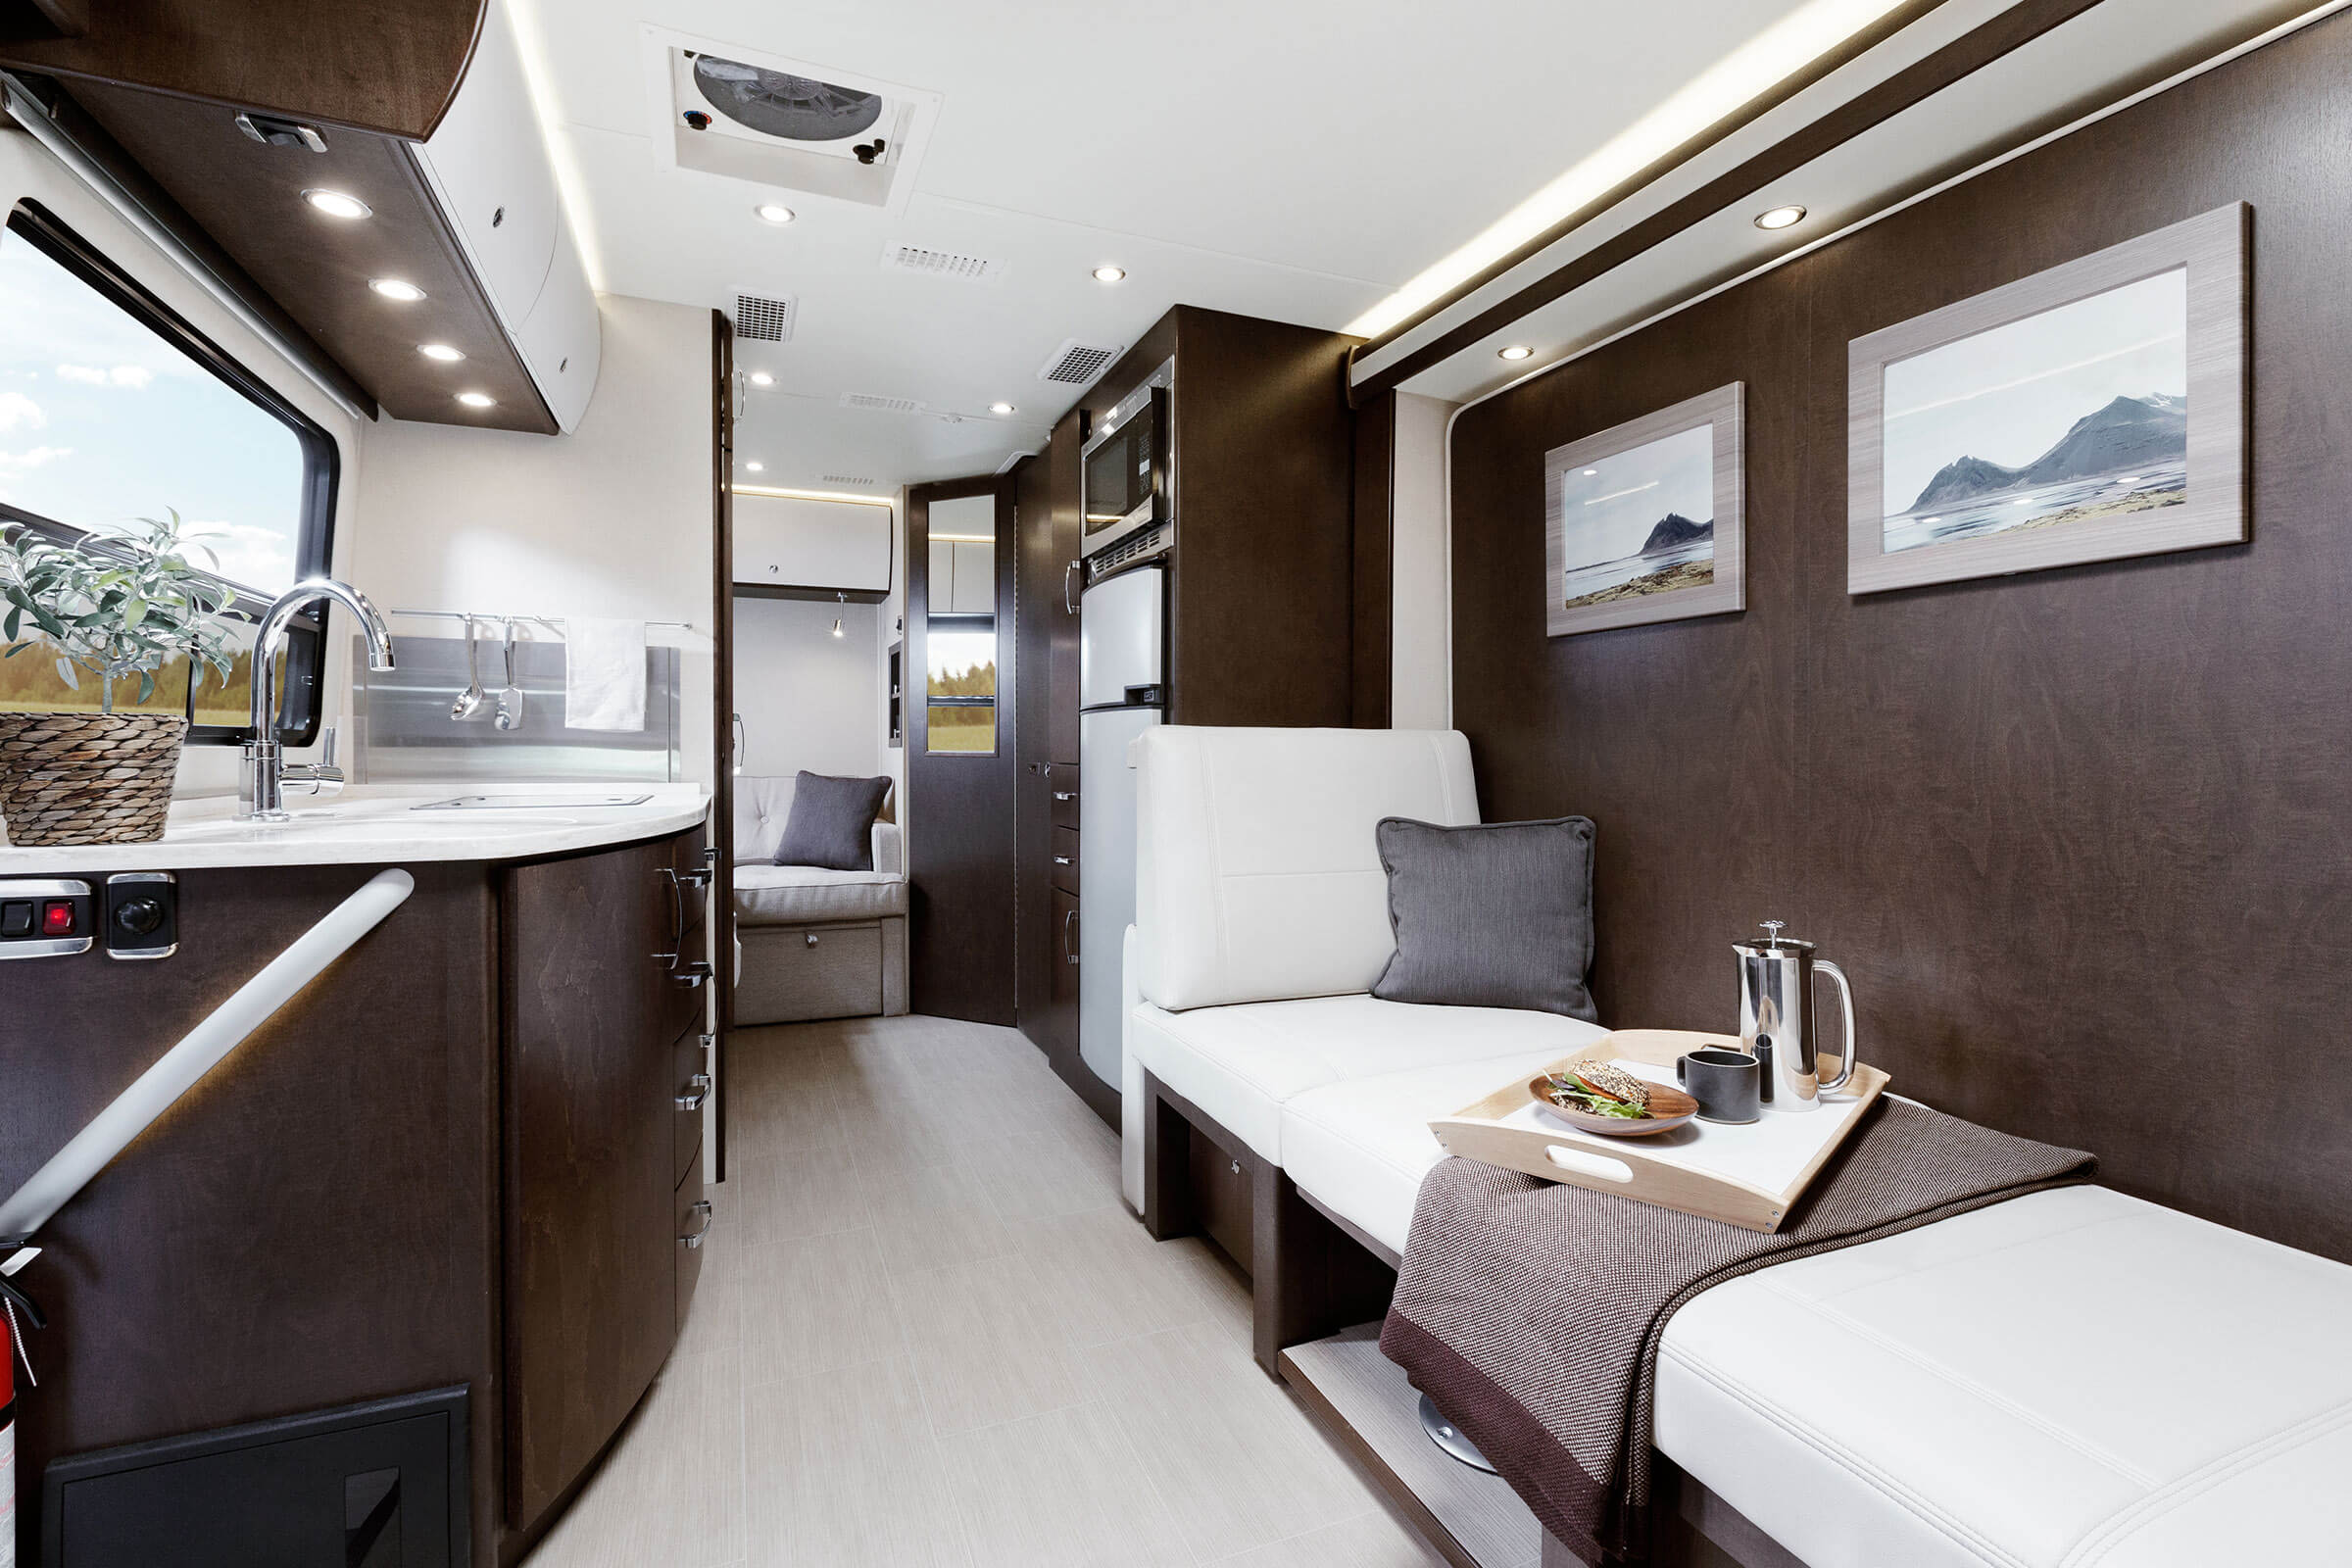 Mercedes Sprinter Rv >> Leisure Travel Vans Transforms The Open Road With The All-New 2016 Unity FX | Roaming Times